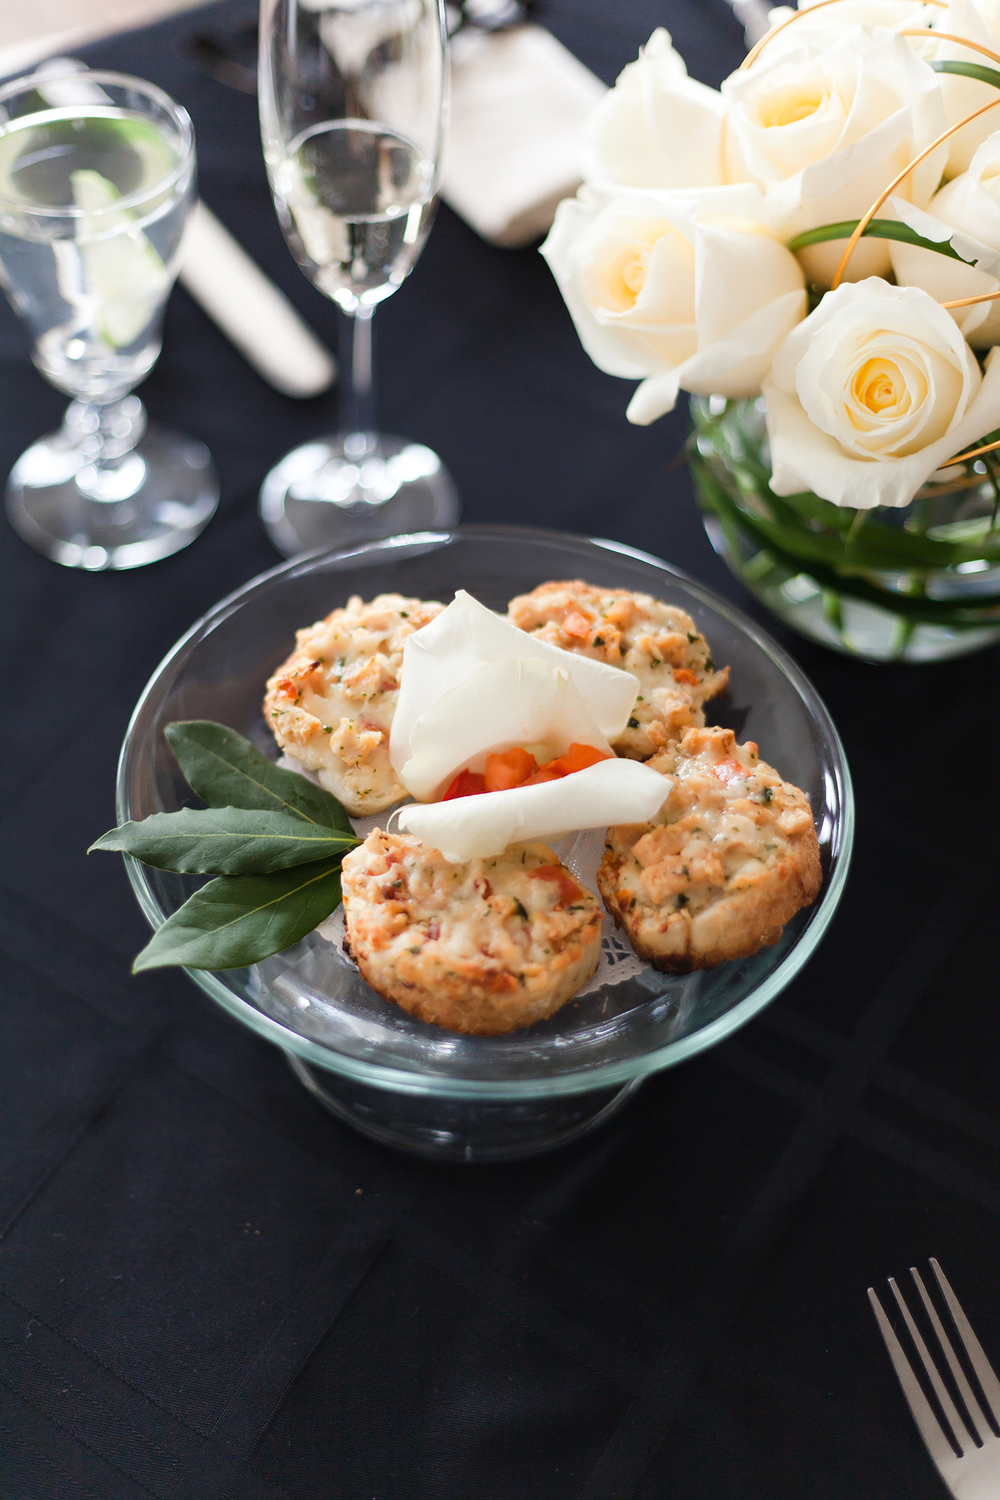 Cherry Bomb Catering | Best Caterers in Reno Nevada